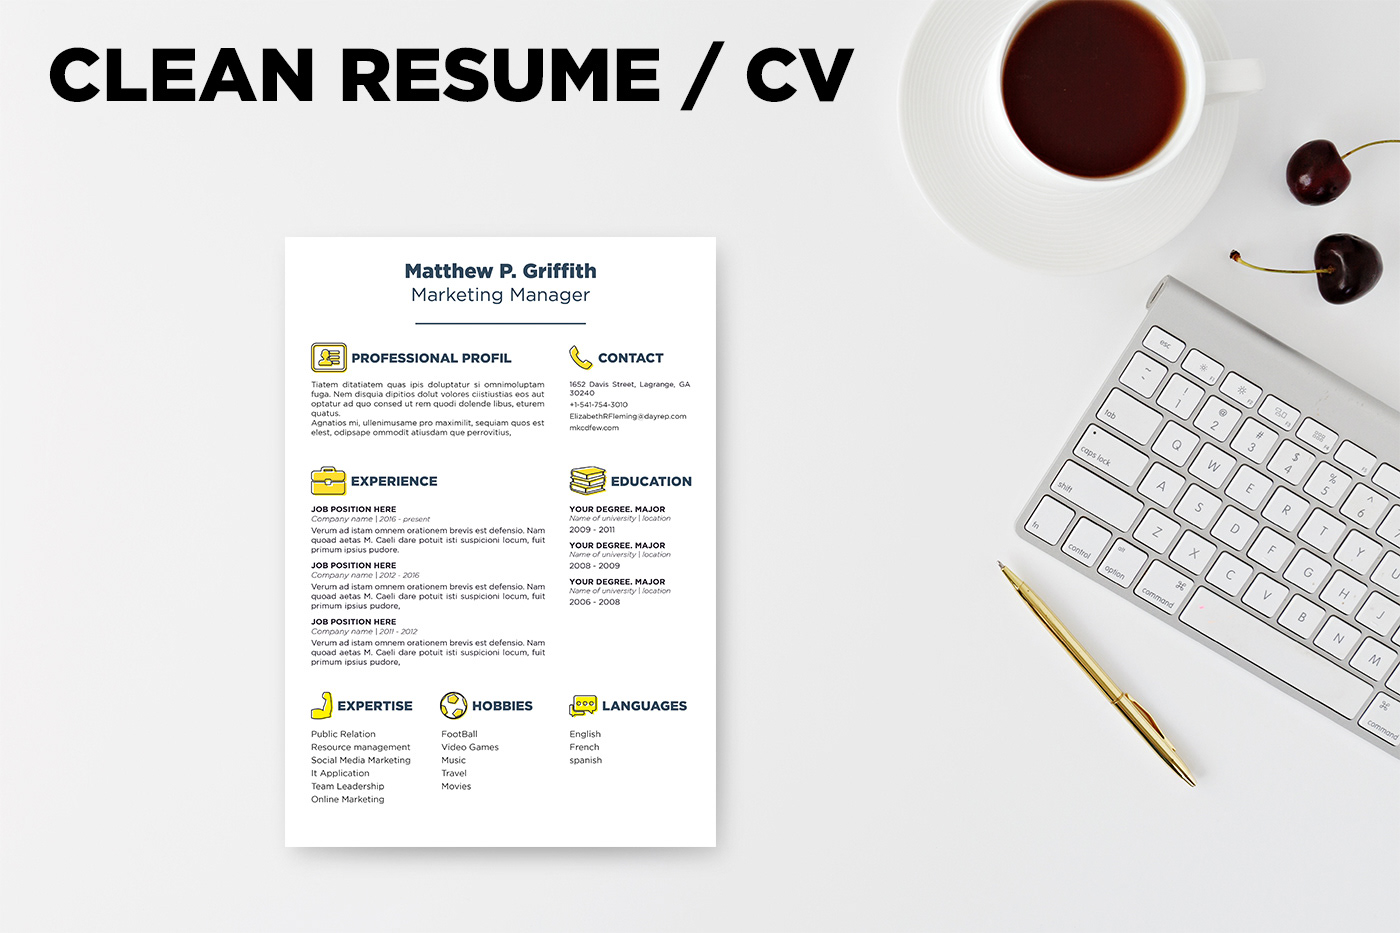 free resume   cv template  u0026 cover letter in word   psd